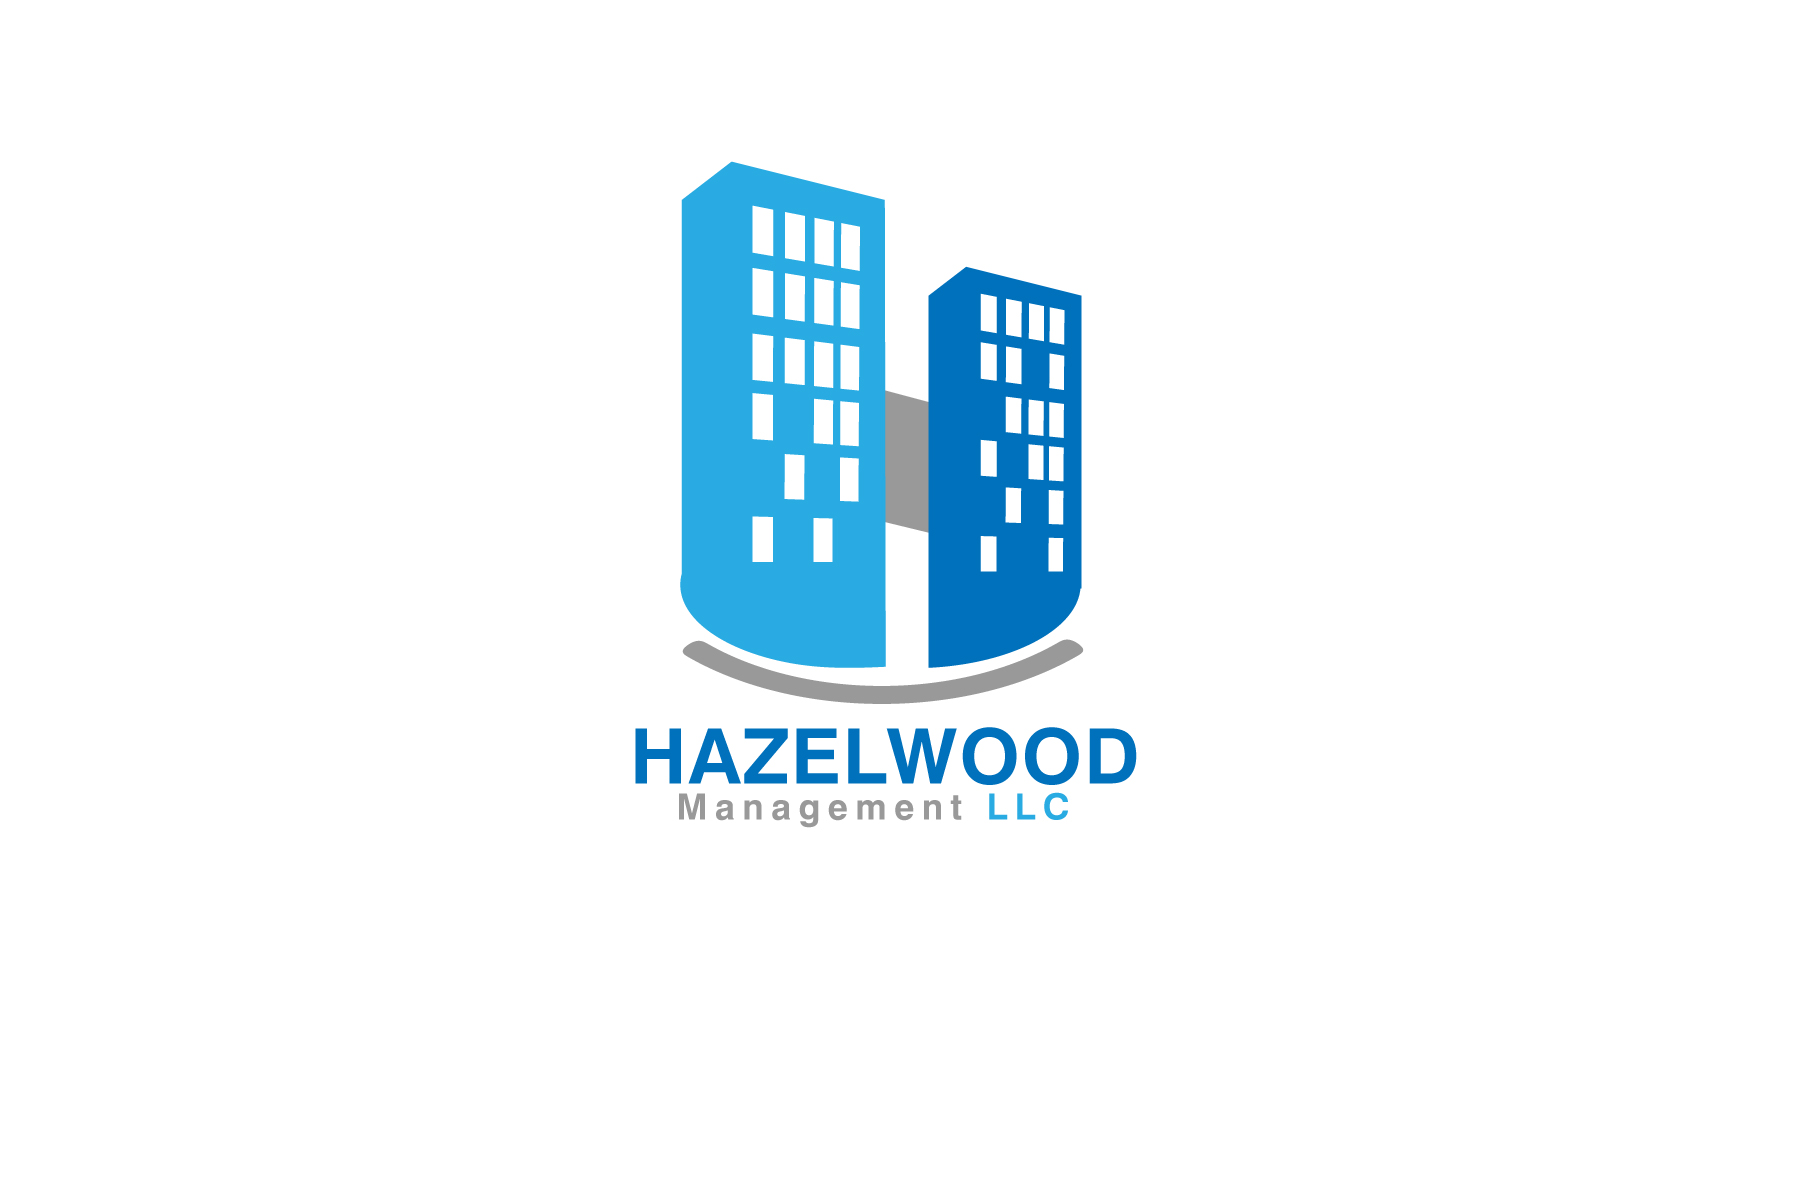 Logo Design by Jagdeep Singh - Entry No. 18 in the Logo Design Contest Hazelwood Management LLC Logo Design.